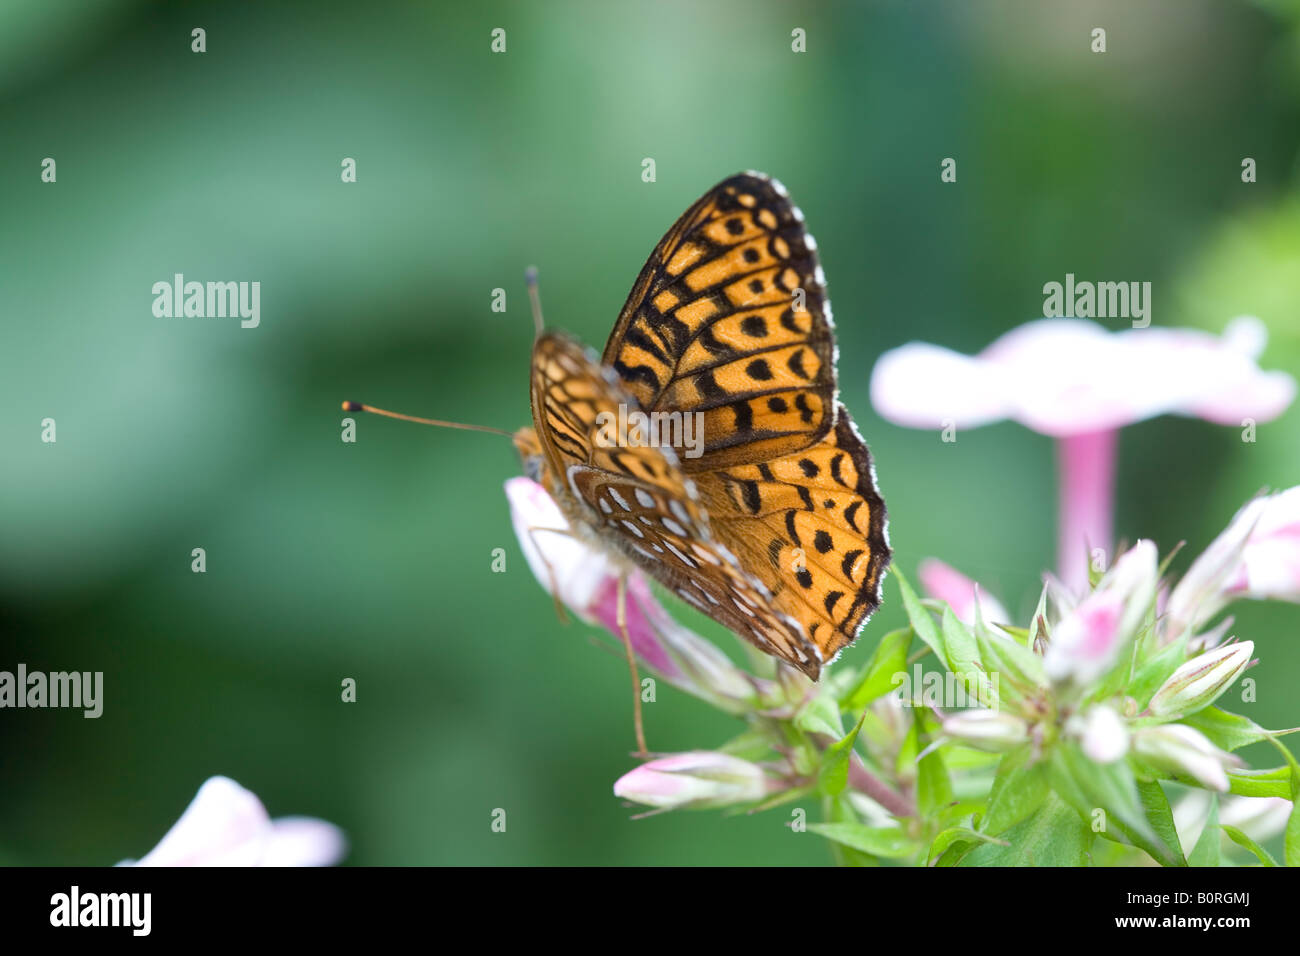 butterfly basking on flower - Stock Image